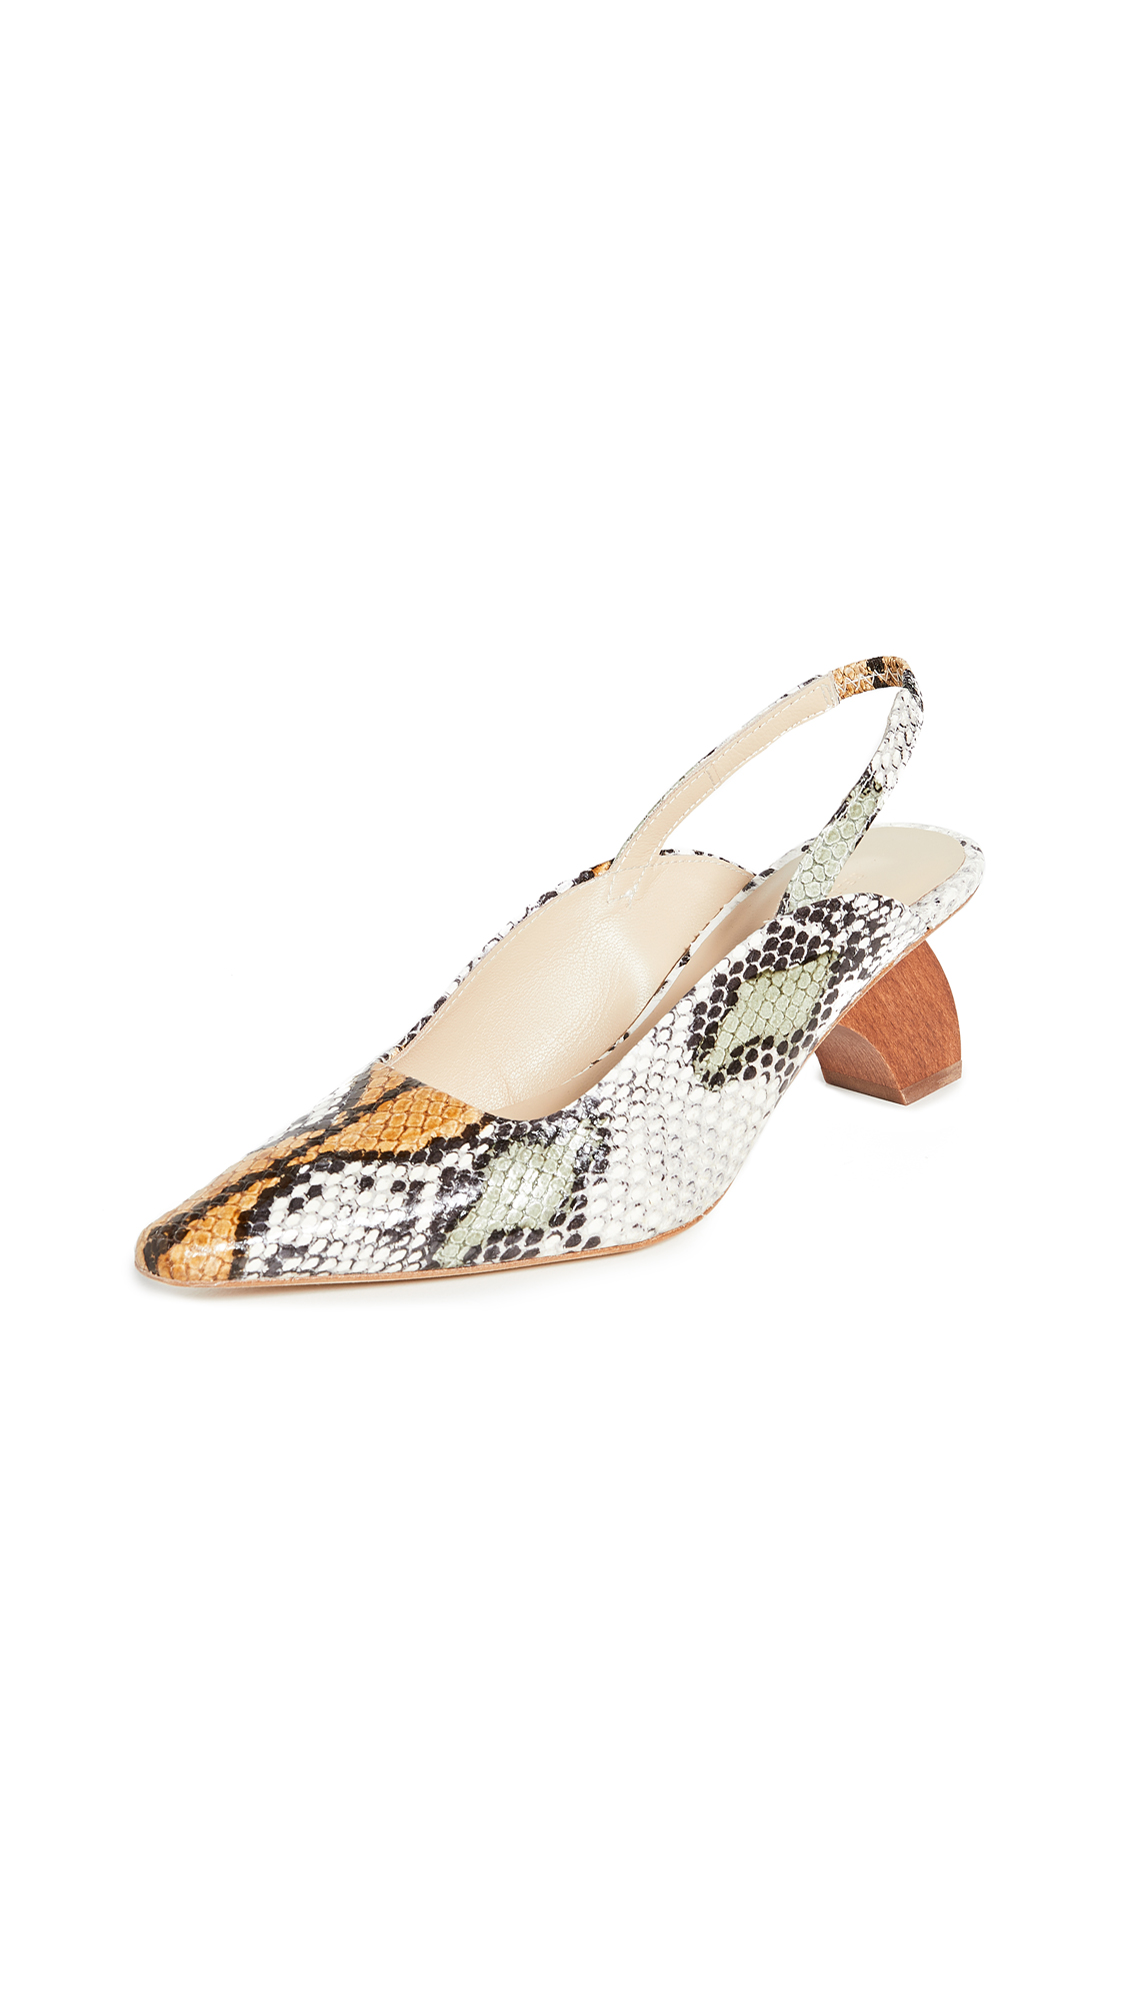 Rejina Pyo Dylan Slingbacks 60mm - 50% Off Sale